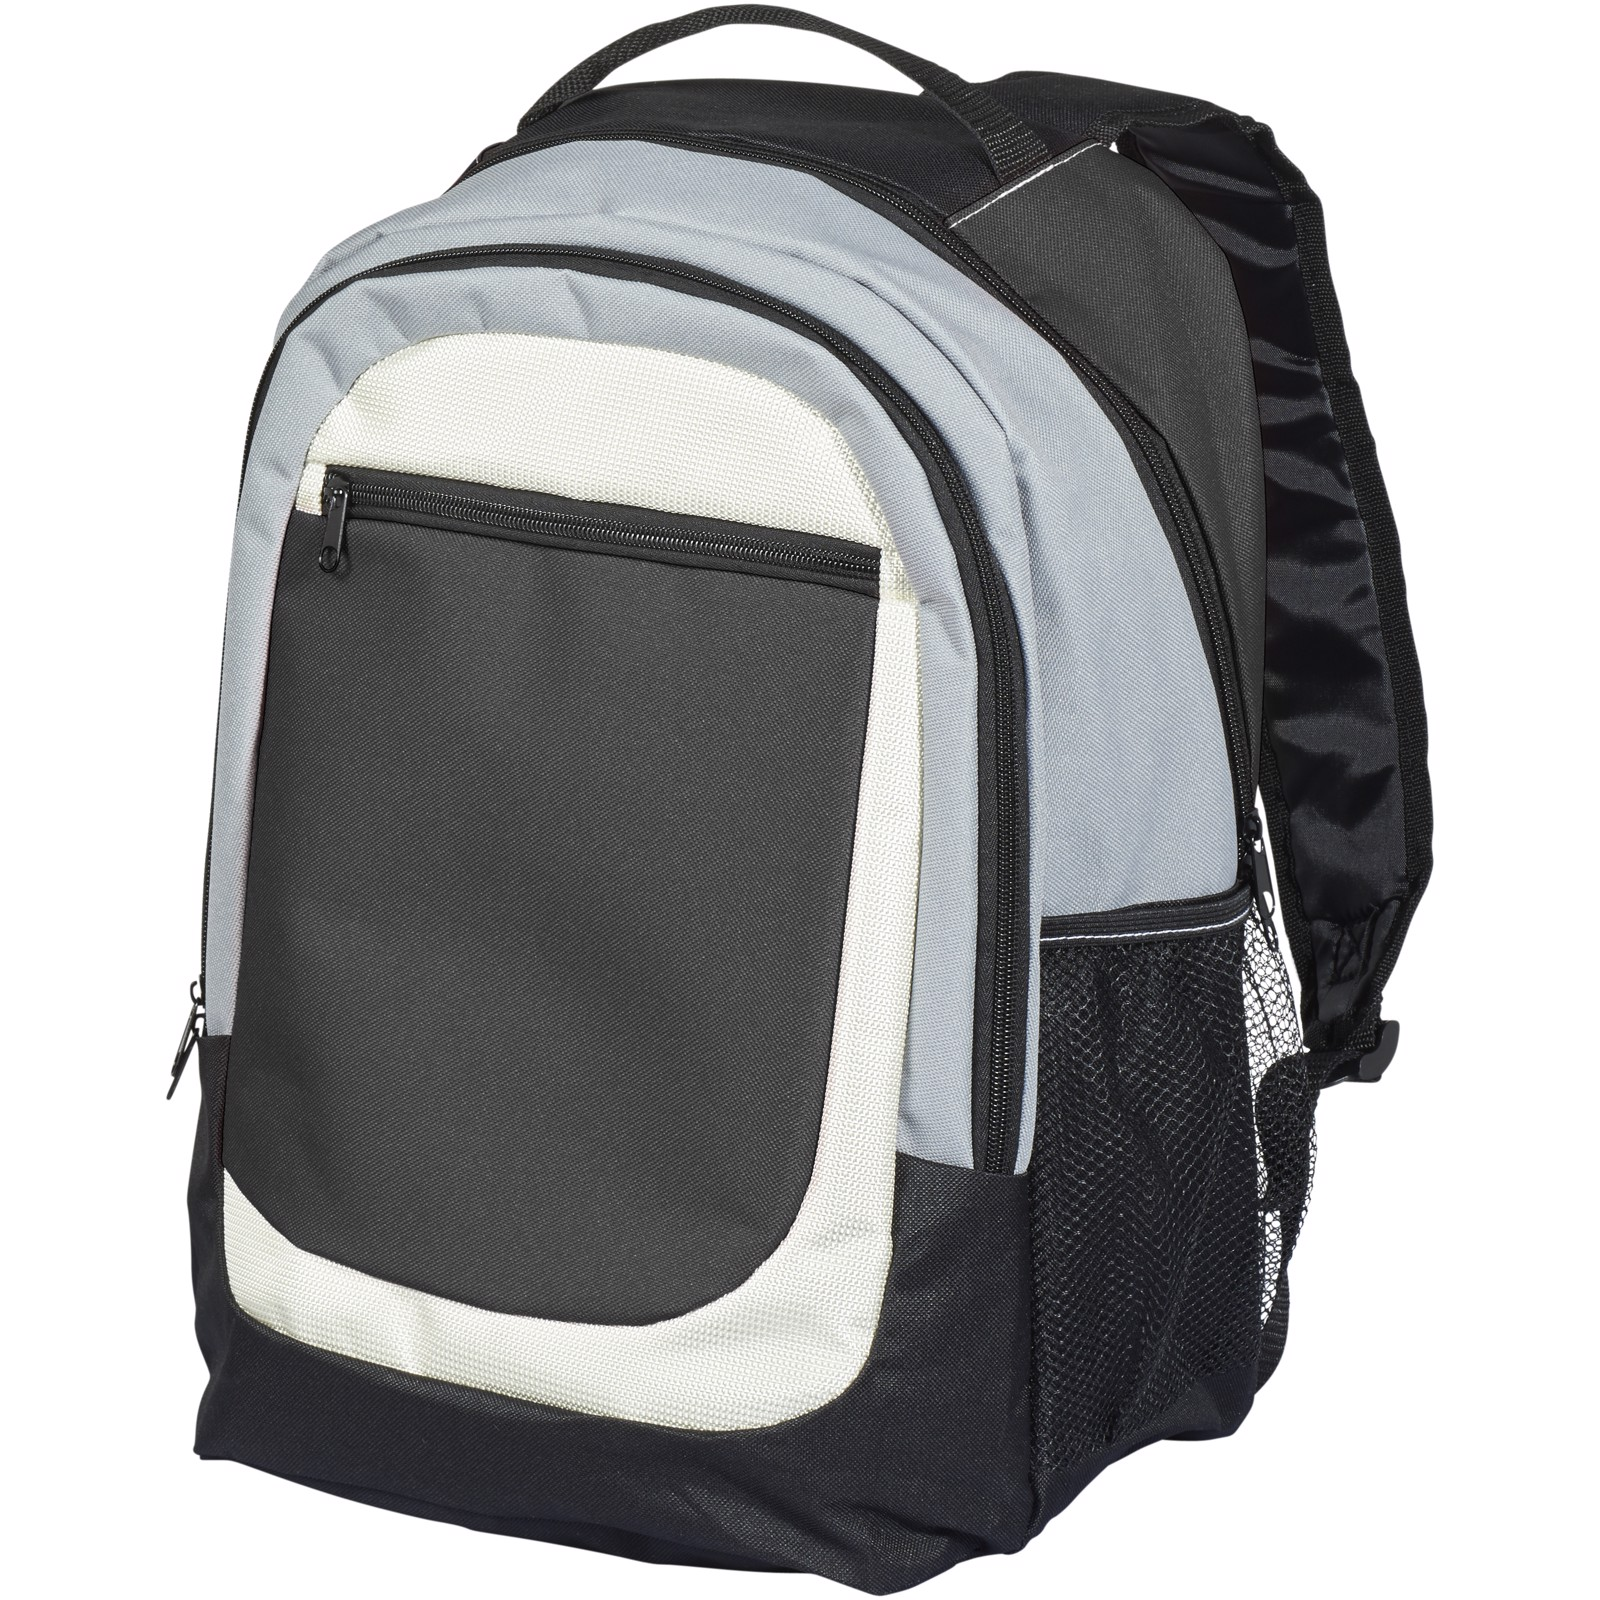 Tumba backpack - Grey